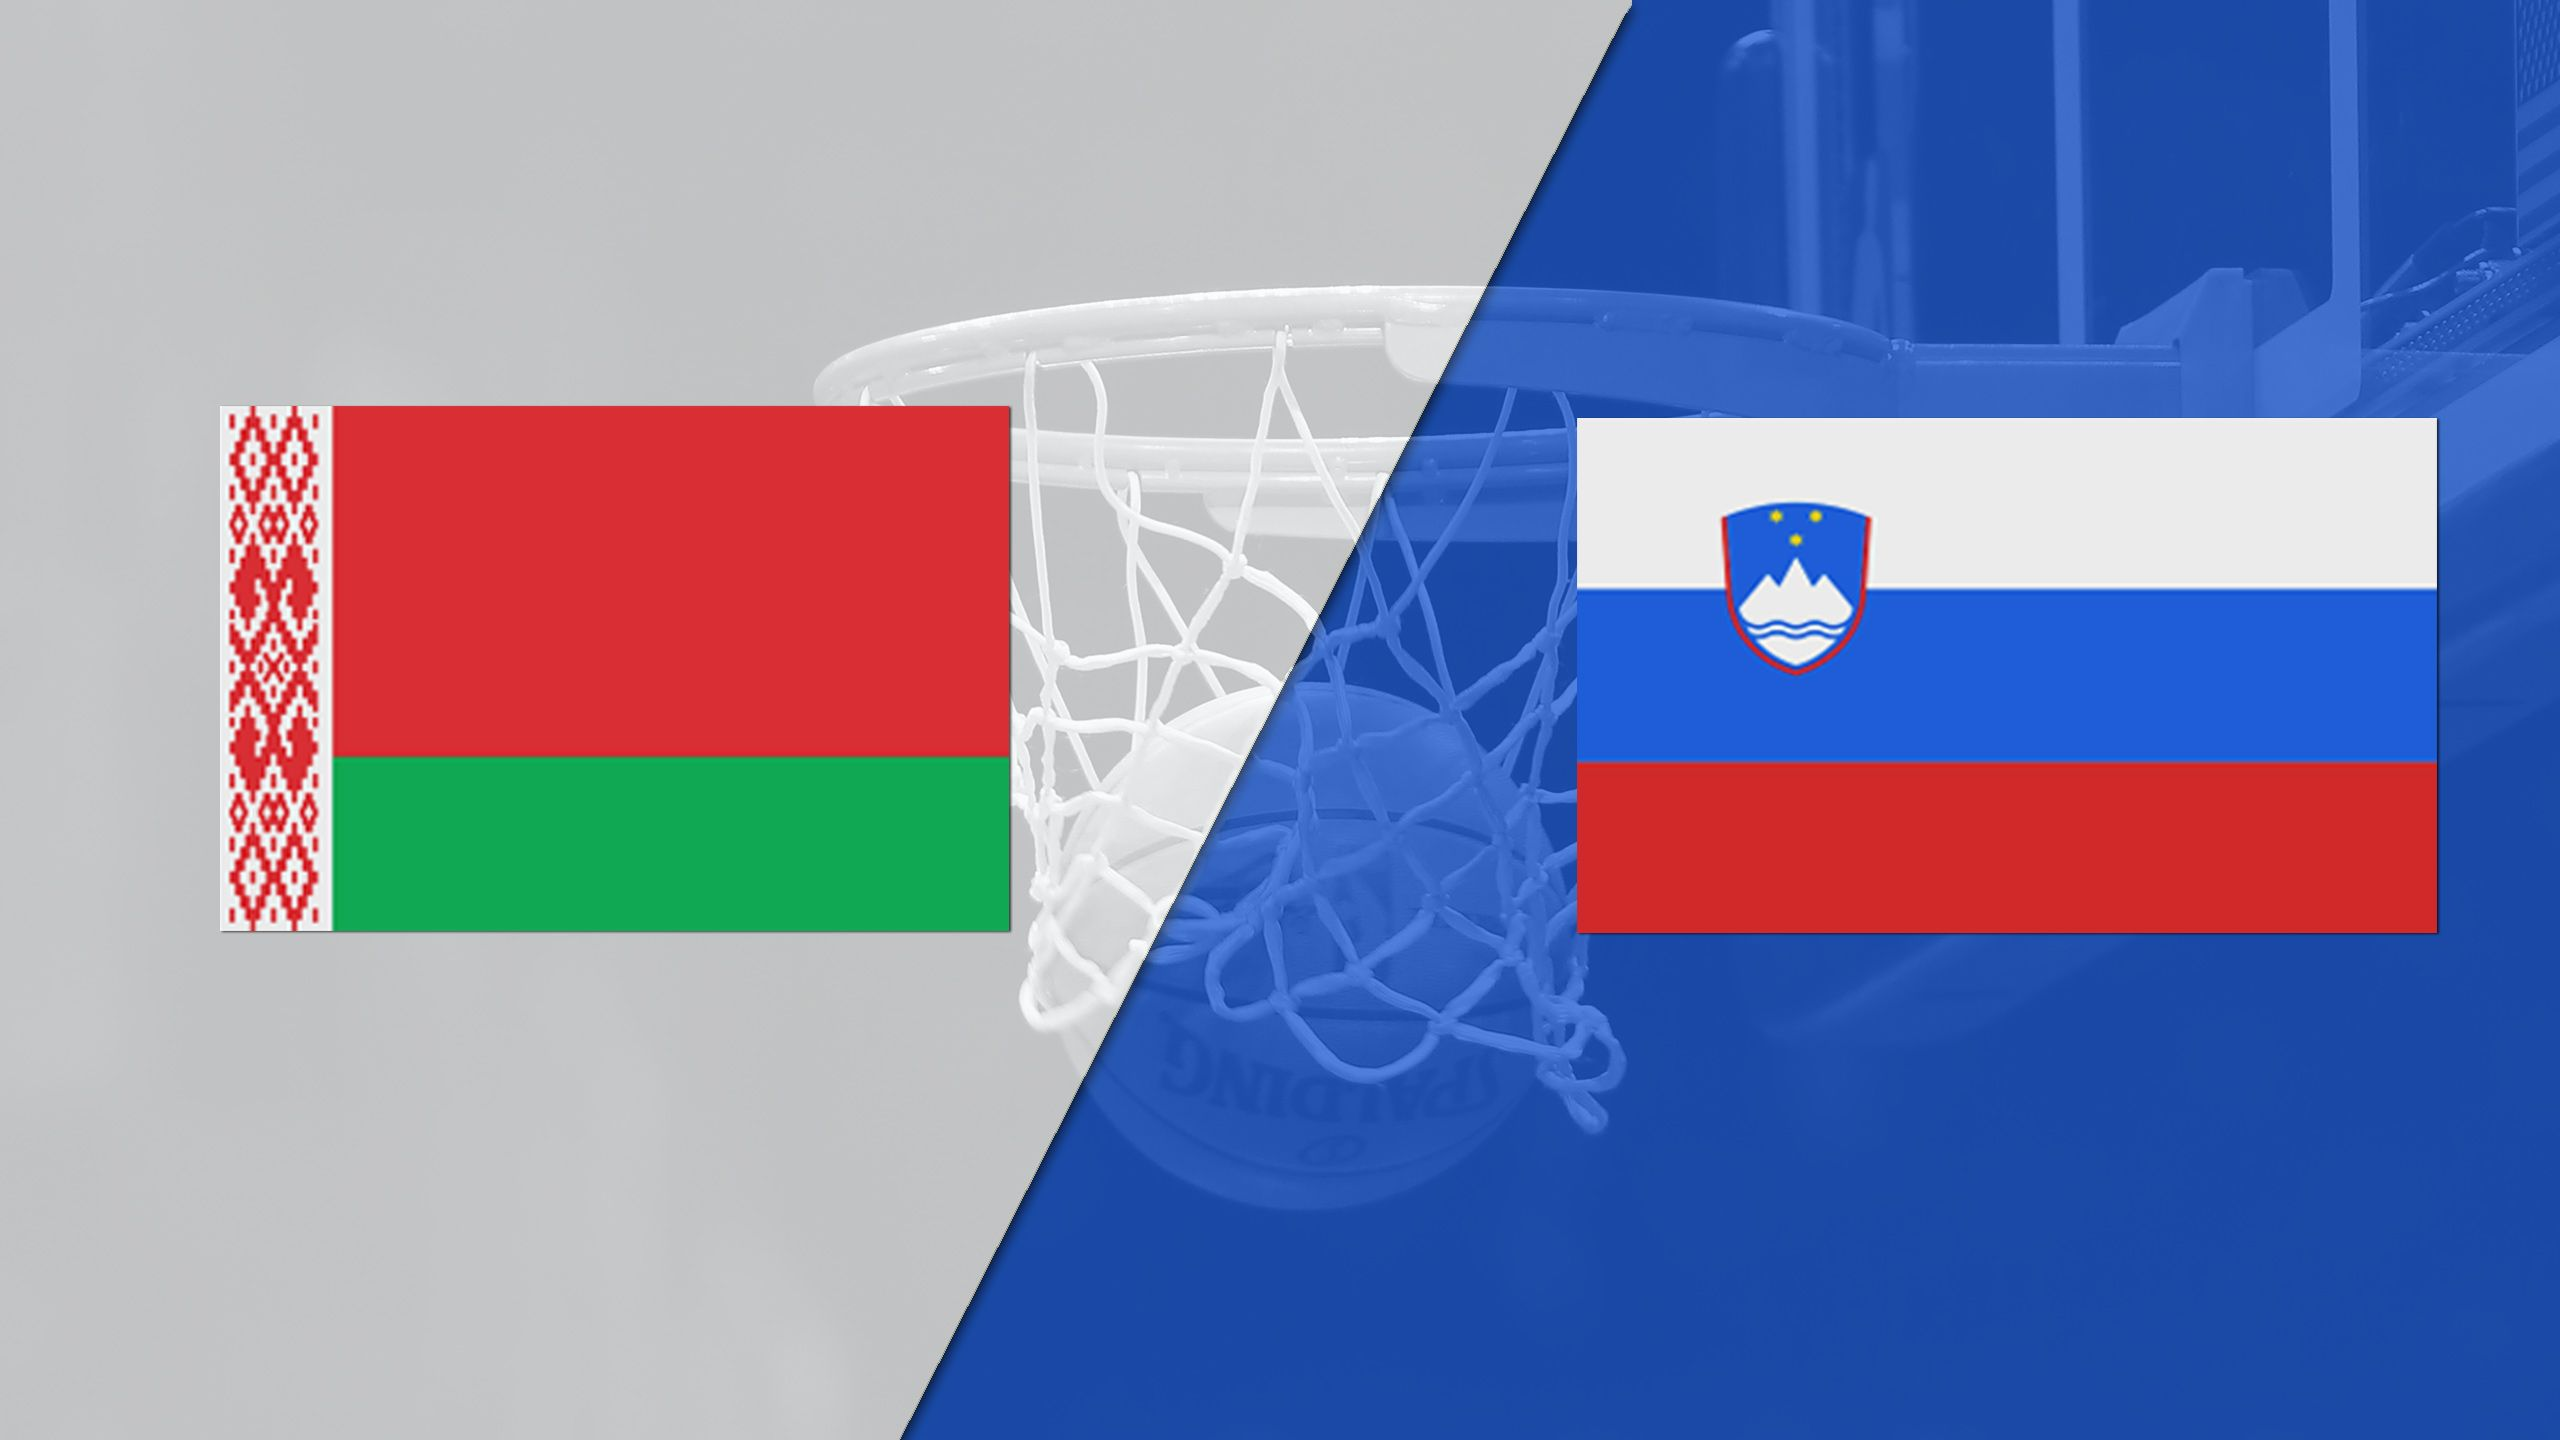 Belarus vs. Slovenia (FIBA World Cup 2019 Qualifier)